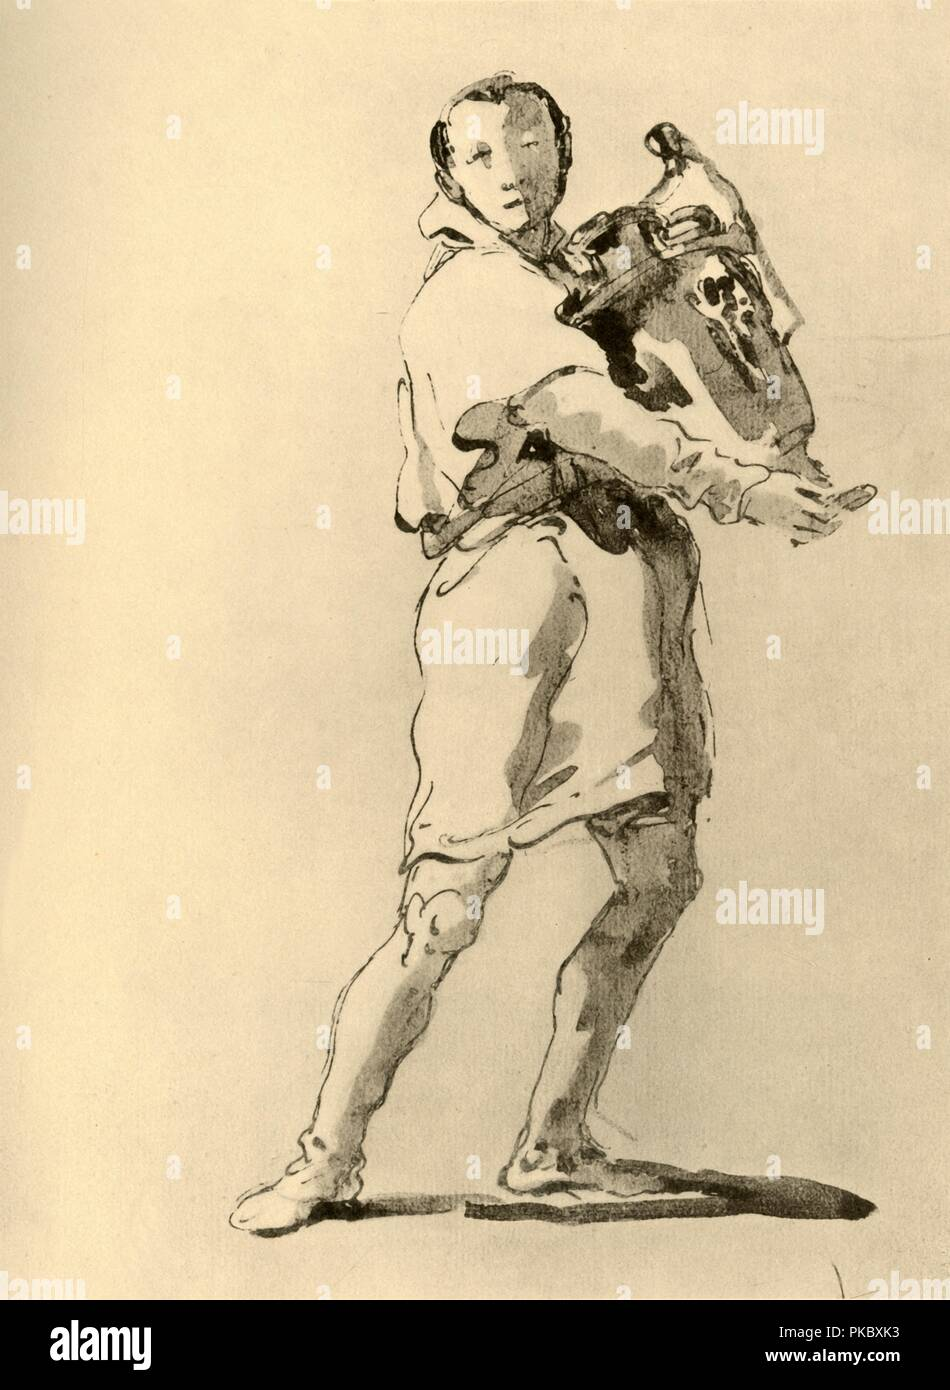 'Youth with Amphora', mid 18th century, (1928). 'Youth bearing an amphora', pen with wash on paper. At one time known to have been in the collection of Vicomte B d'Hendecourt, London. Italian Venetian painter and printmaker Giovanni Battista Tiepolo (1696-1770), worked not only in Italy, but also in Germany and Spain. He was commissioned to carry out frescoes in churches and palaces, and was elected President of the Academy of Padua. As well as his large-scale majestic works, he also produced etchings and oil paintings, and is widely regarded as one of the most important artists of the period. - Stock Image